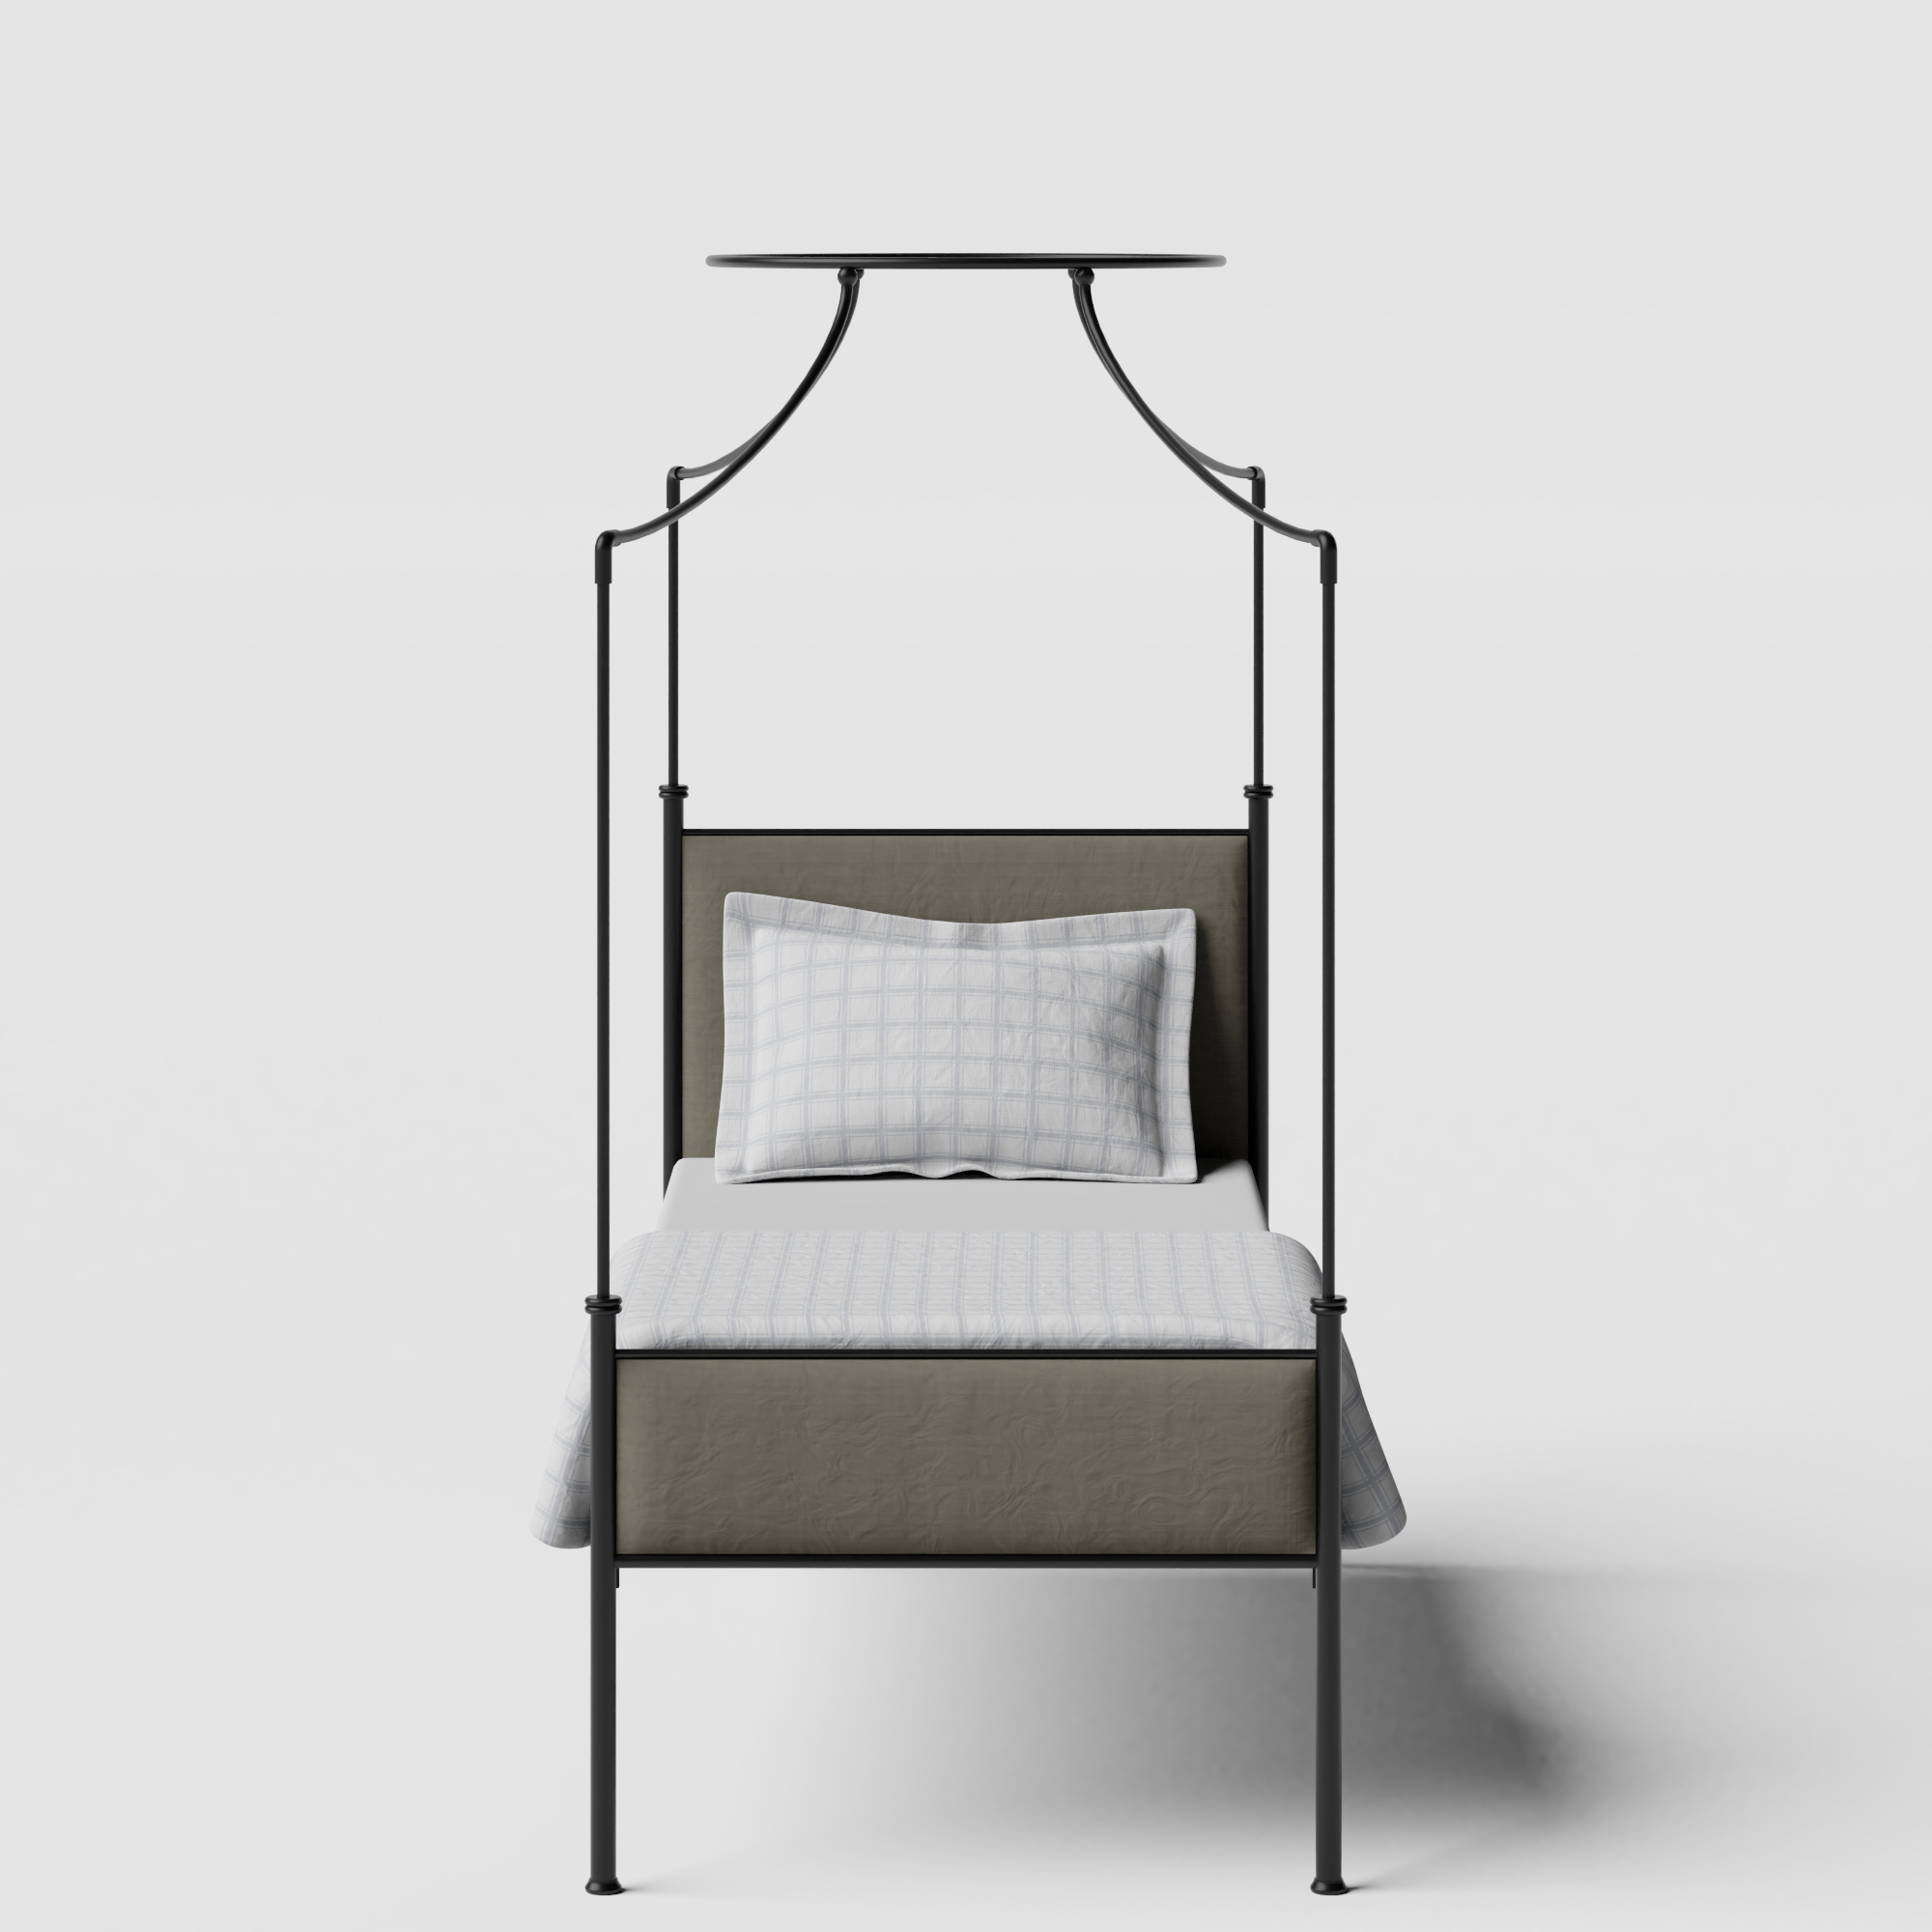 Waterloo iron/metal single bed in black